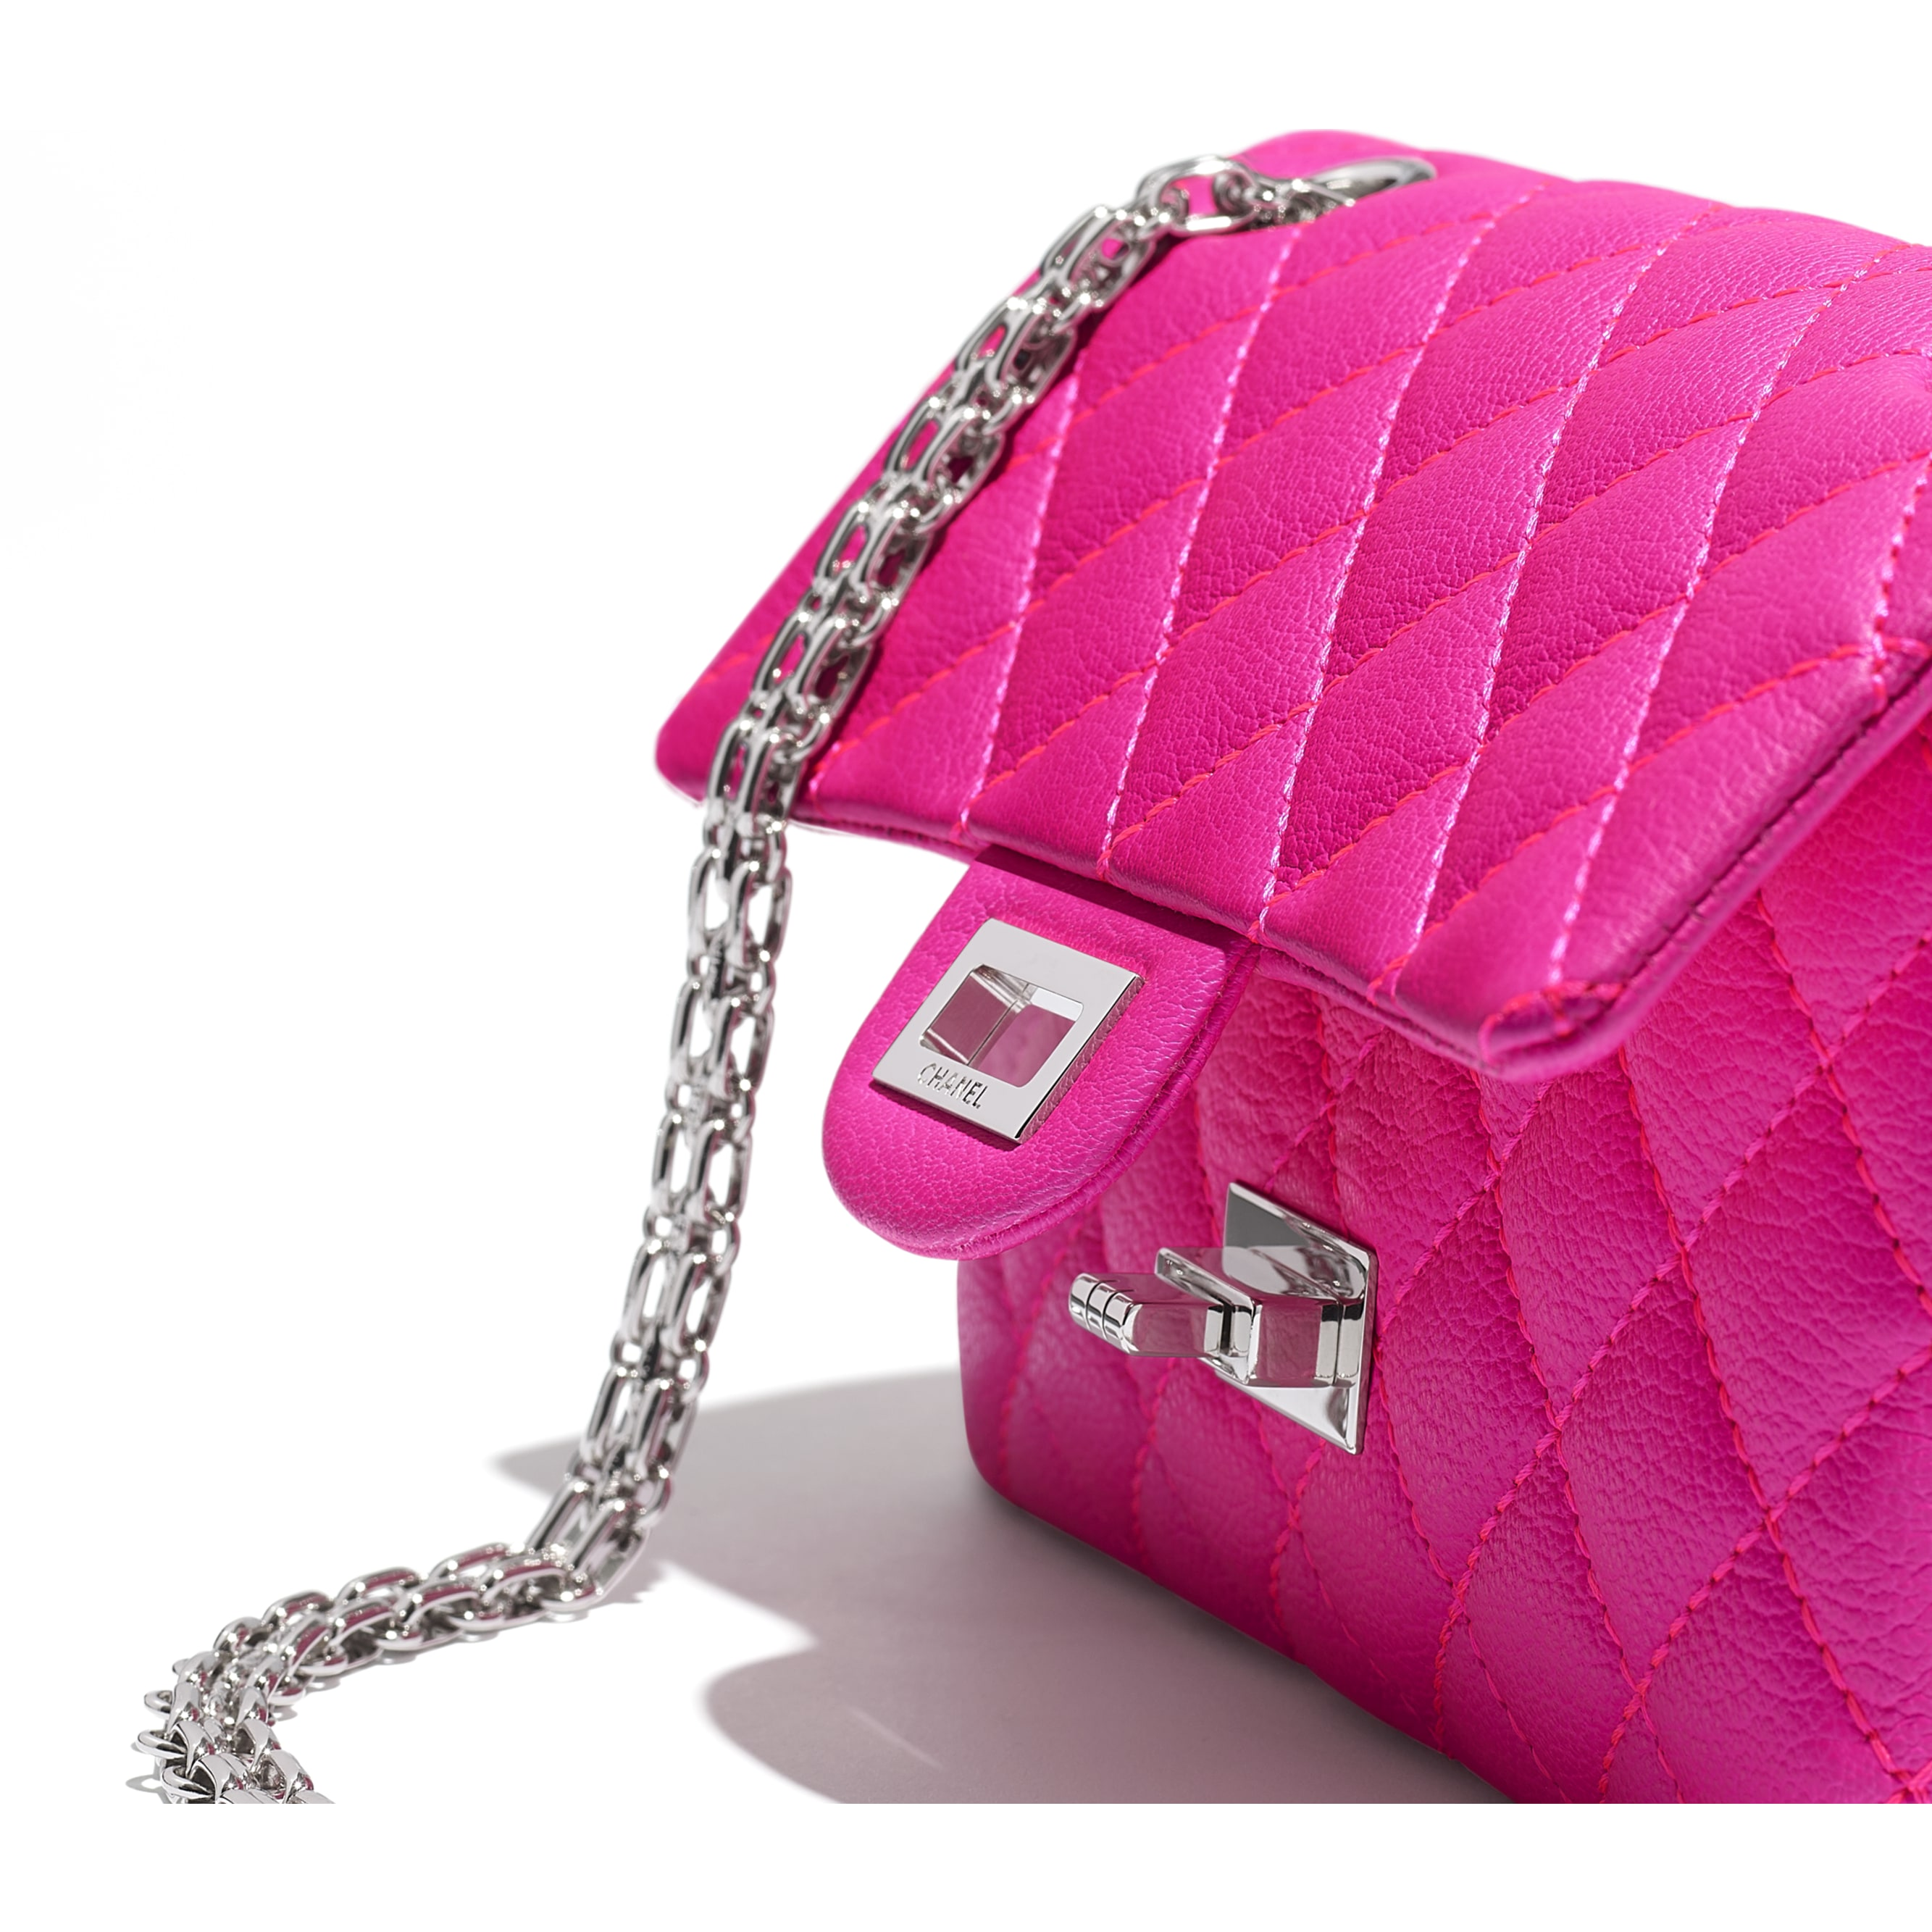 Small 2.55 Handbag - Pink - Goatskin & Silver-Tone Metal - Extra view - see standard sized version